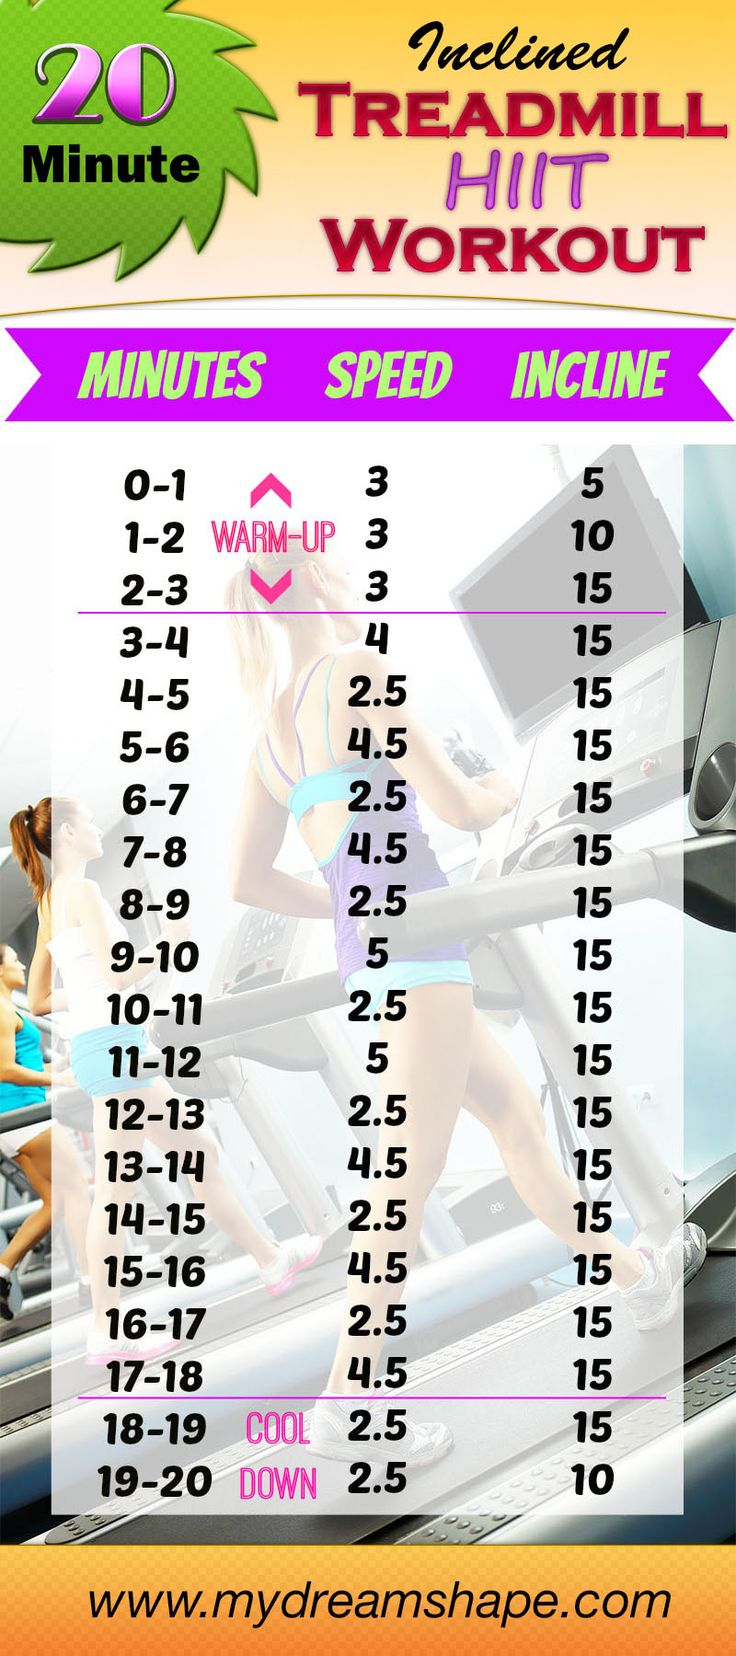 20 Minute Inclined Treadmill Hiit Workout ! Make it your favorite cardio. Learn How To Customize It Here : http://bit.ly/1divhrQ